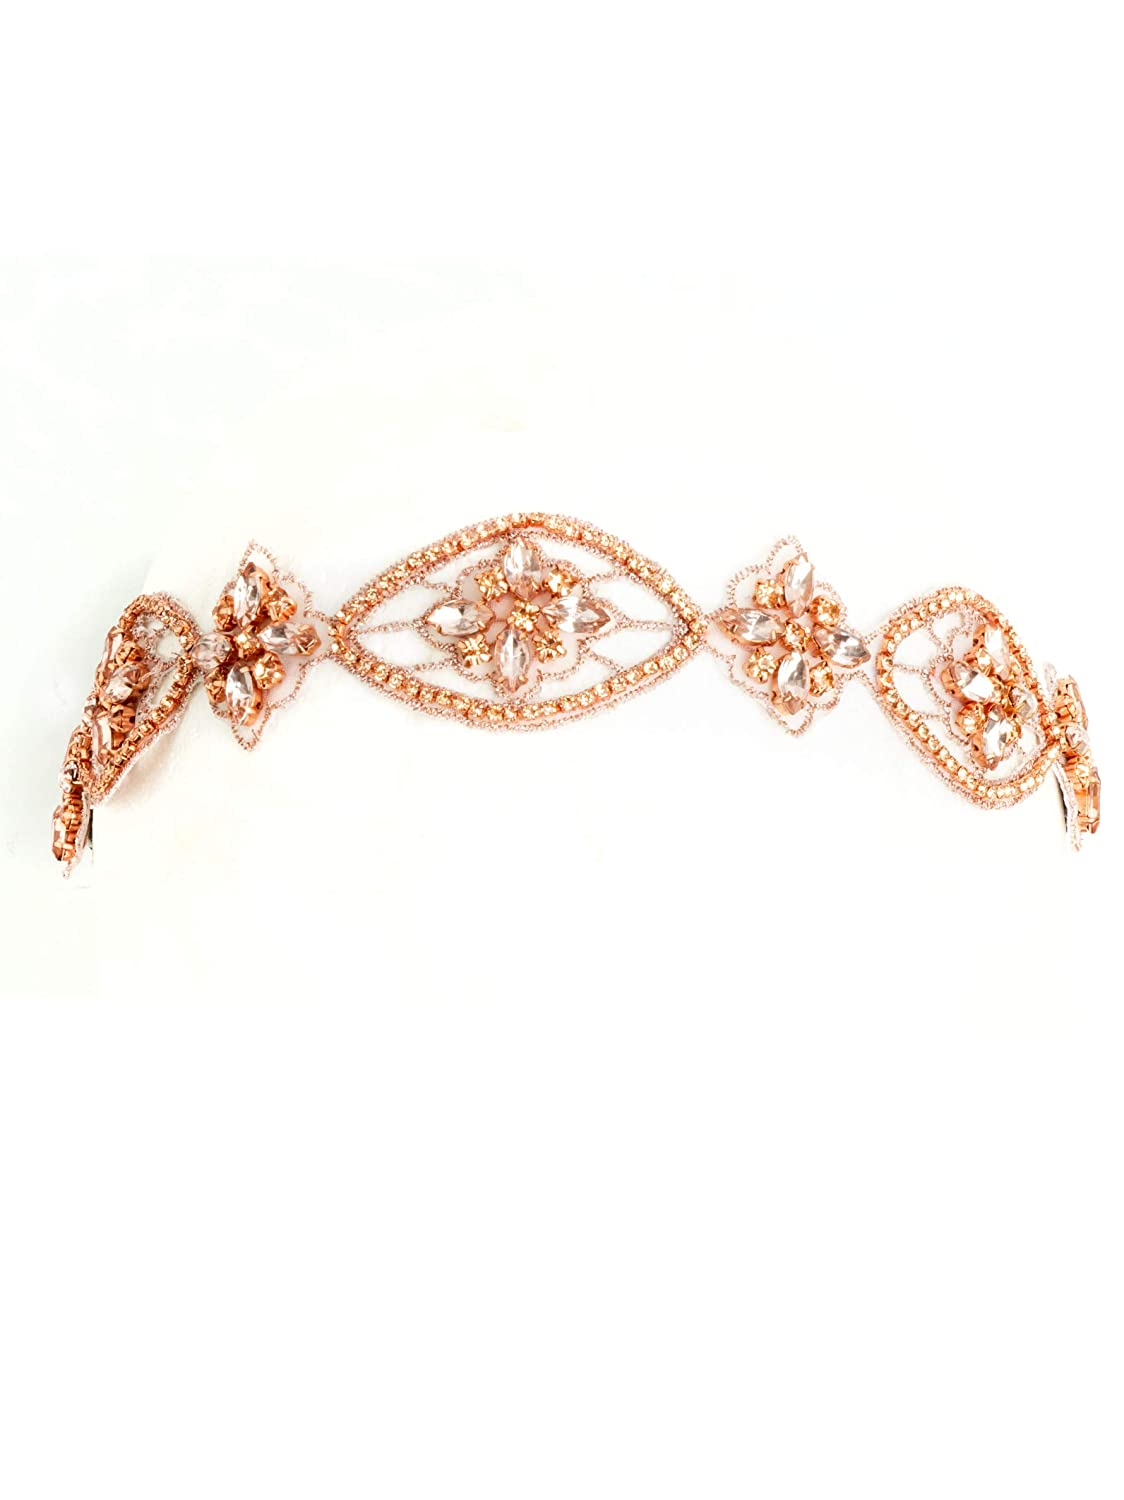 1920s Flapper Headband, Gatsby Headpiece, Wigs Bohomonde Indira Headband Crystal Rhinestone Fancy Formal Beaded Headband Boho Headpiece $12.99 AT vintagedancer.com